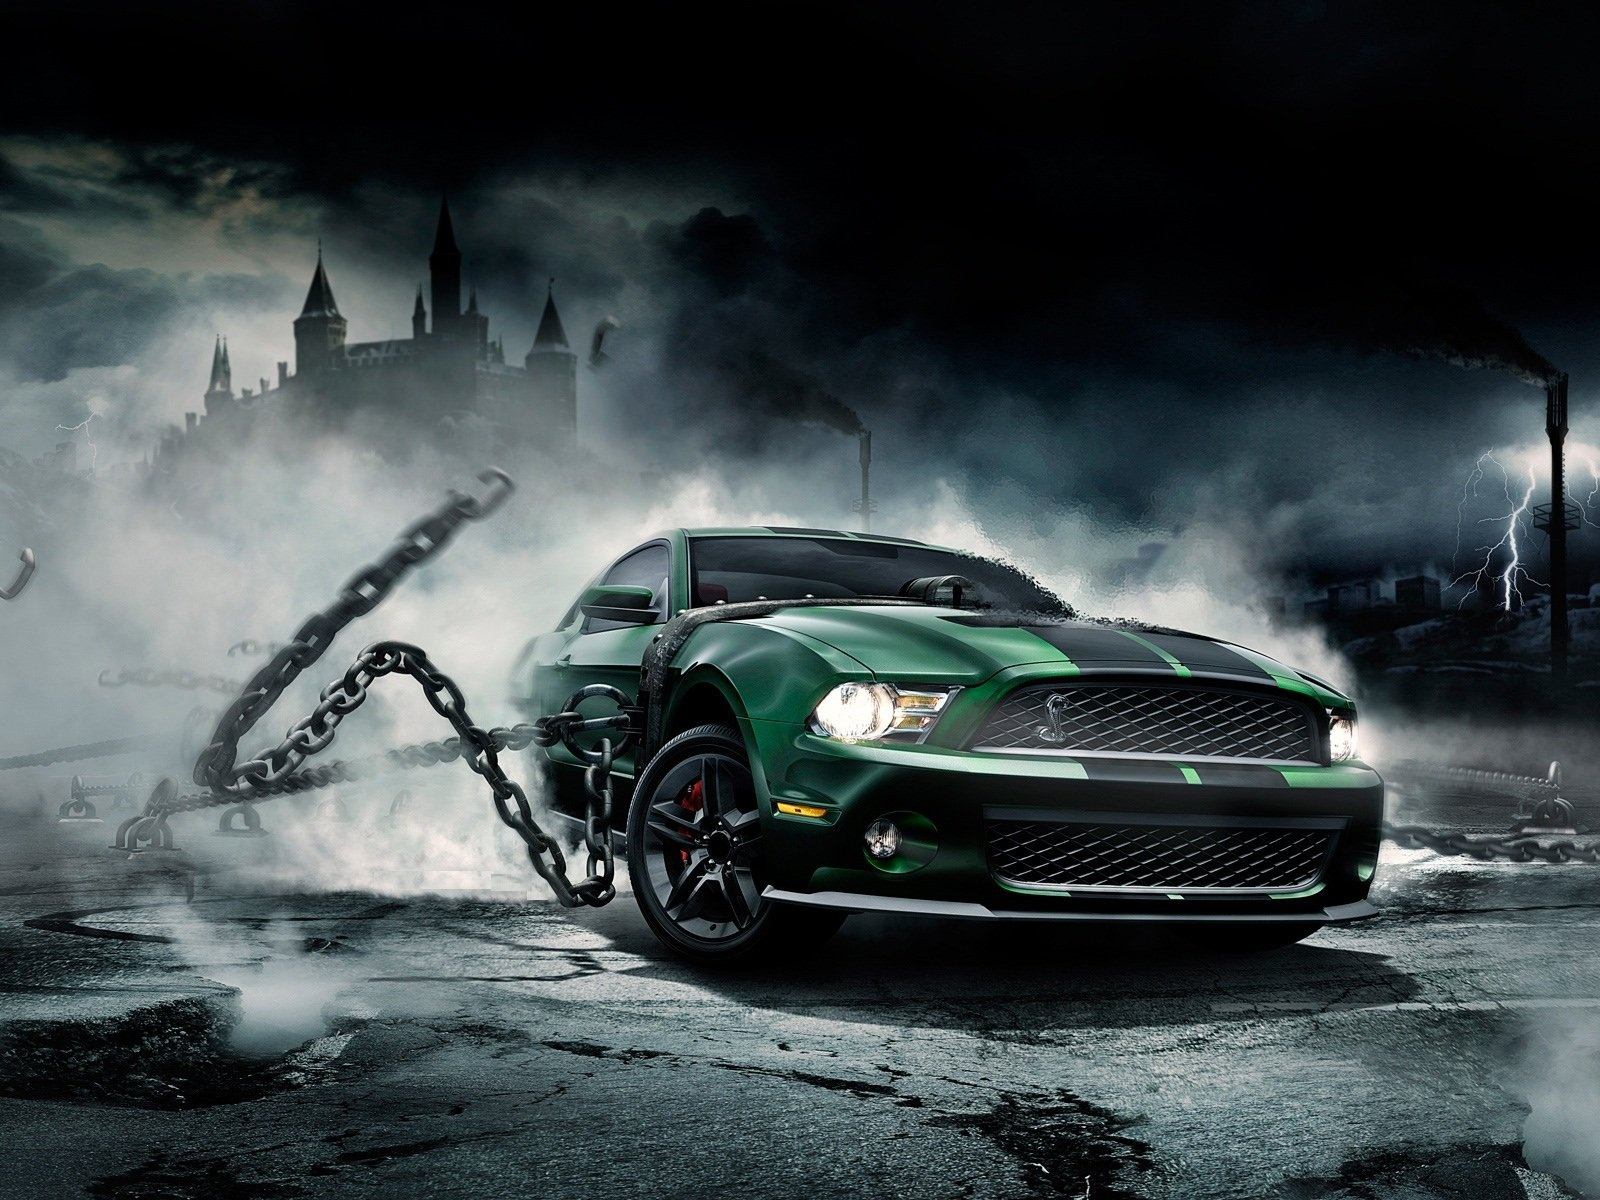 Cool Muscle Car Wallpaper 1600x1200